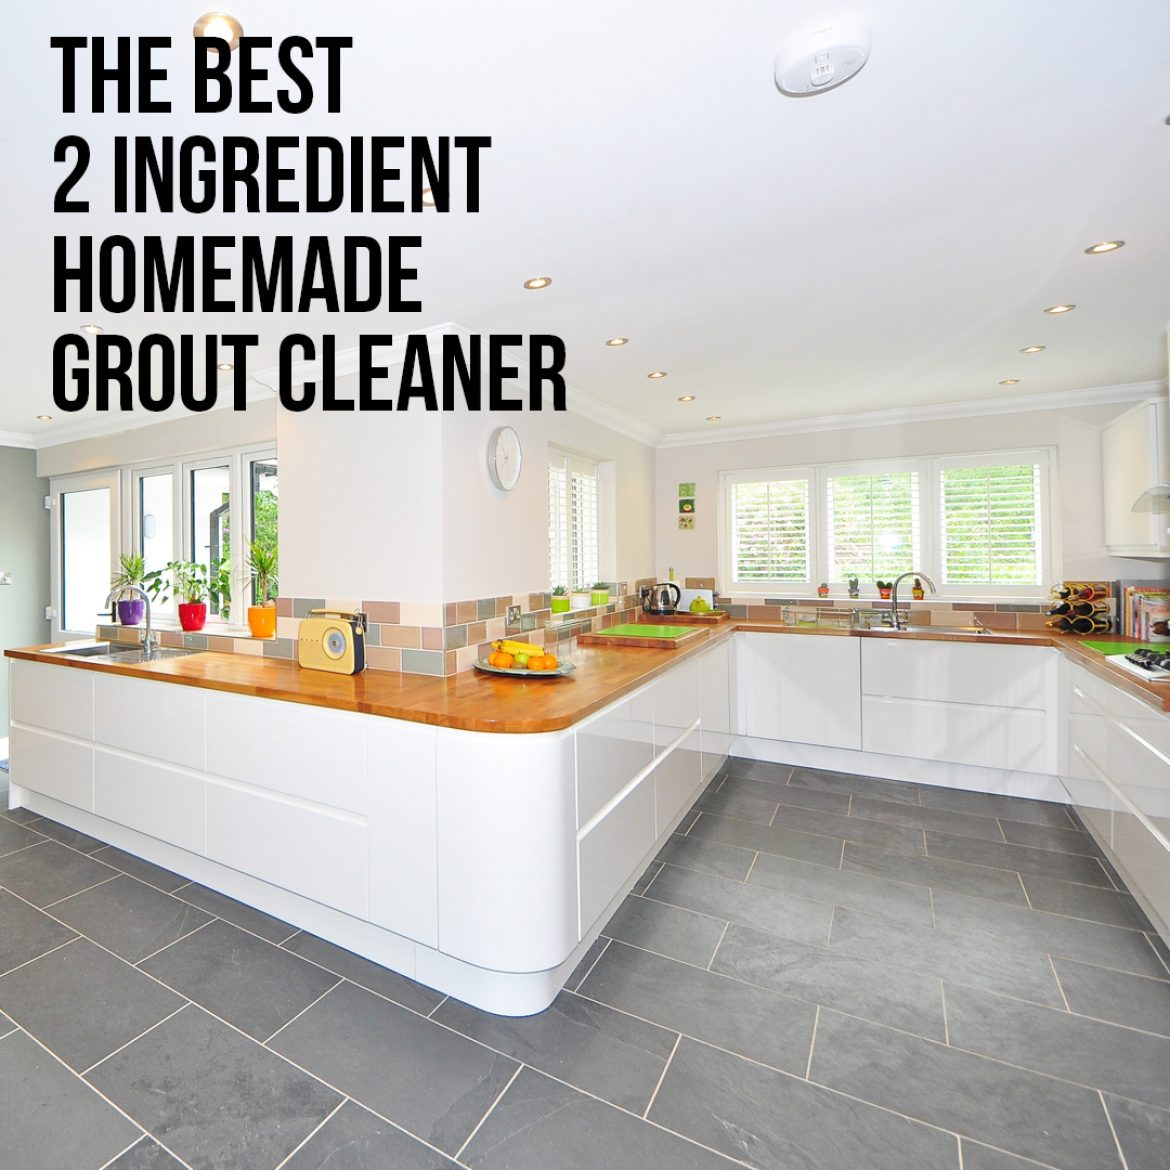 2 Ingredient Homemade Grout Cleaner